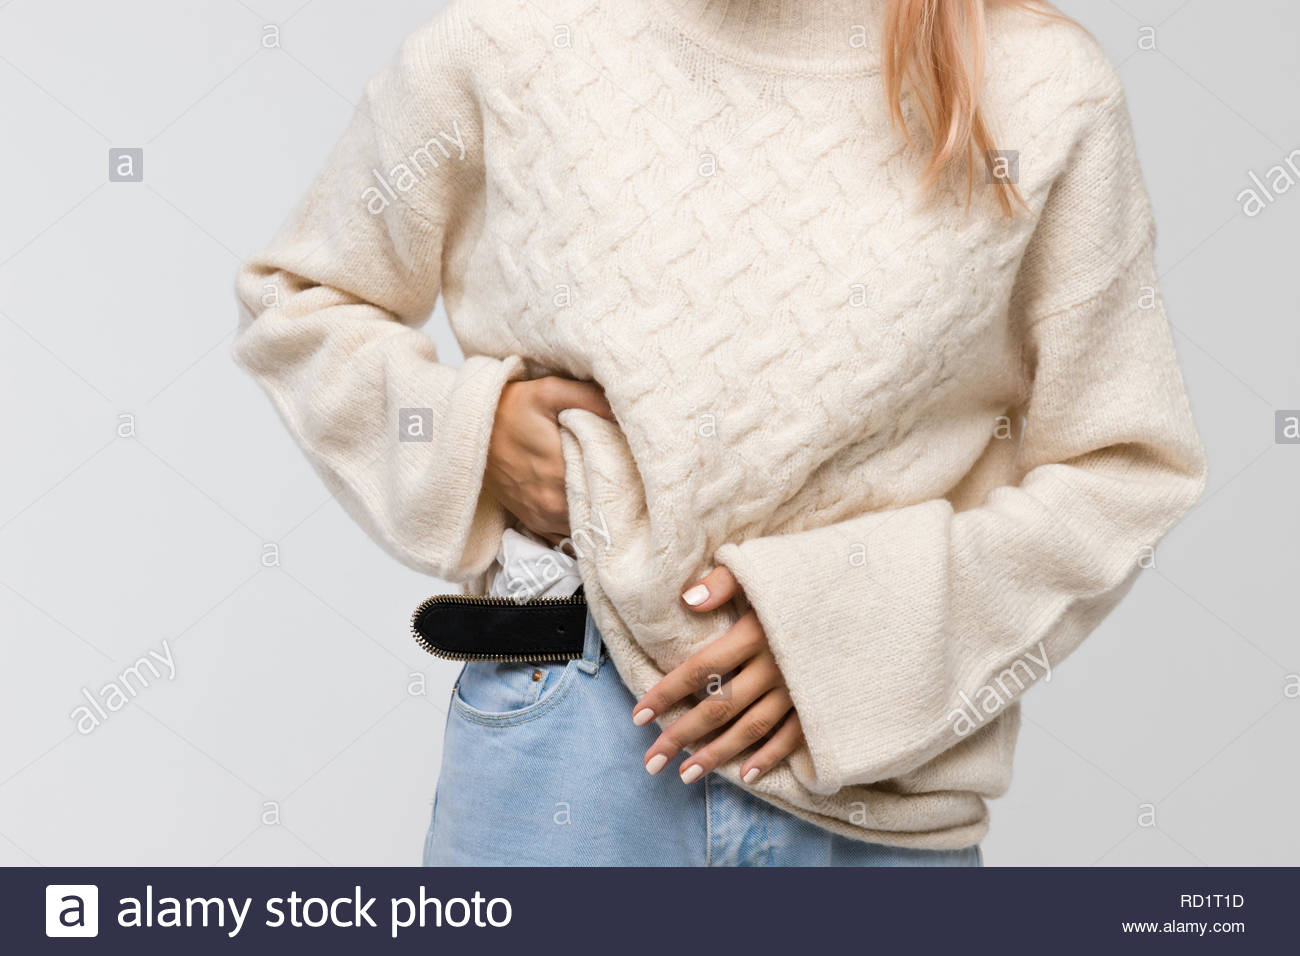 Cropped shot of young woman in white sweater suffering from stomach ache, having menstruation pain, feels bad, front view. Pain in stomach, PMS. - Stock Image